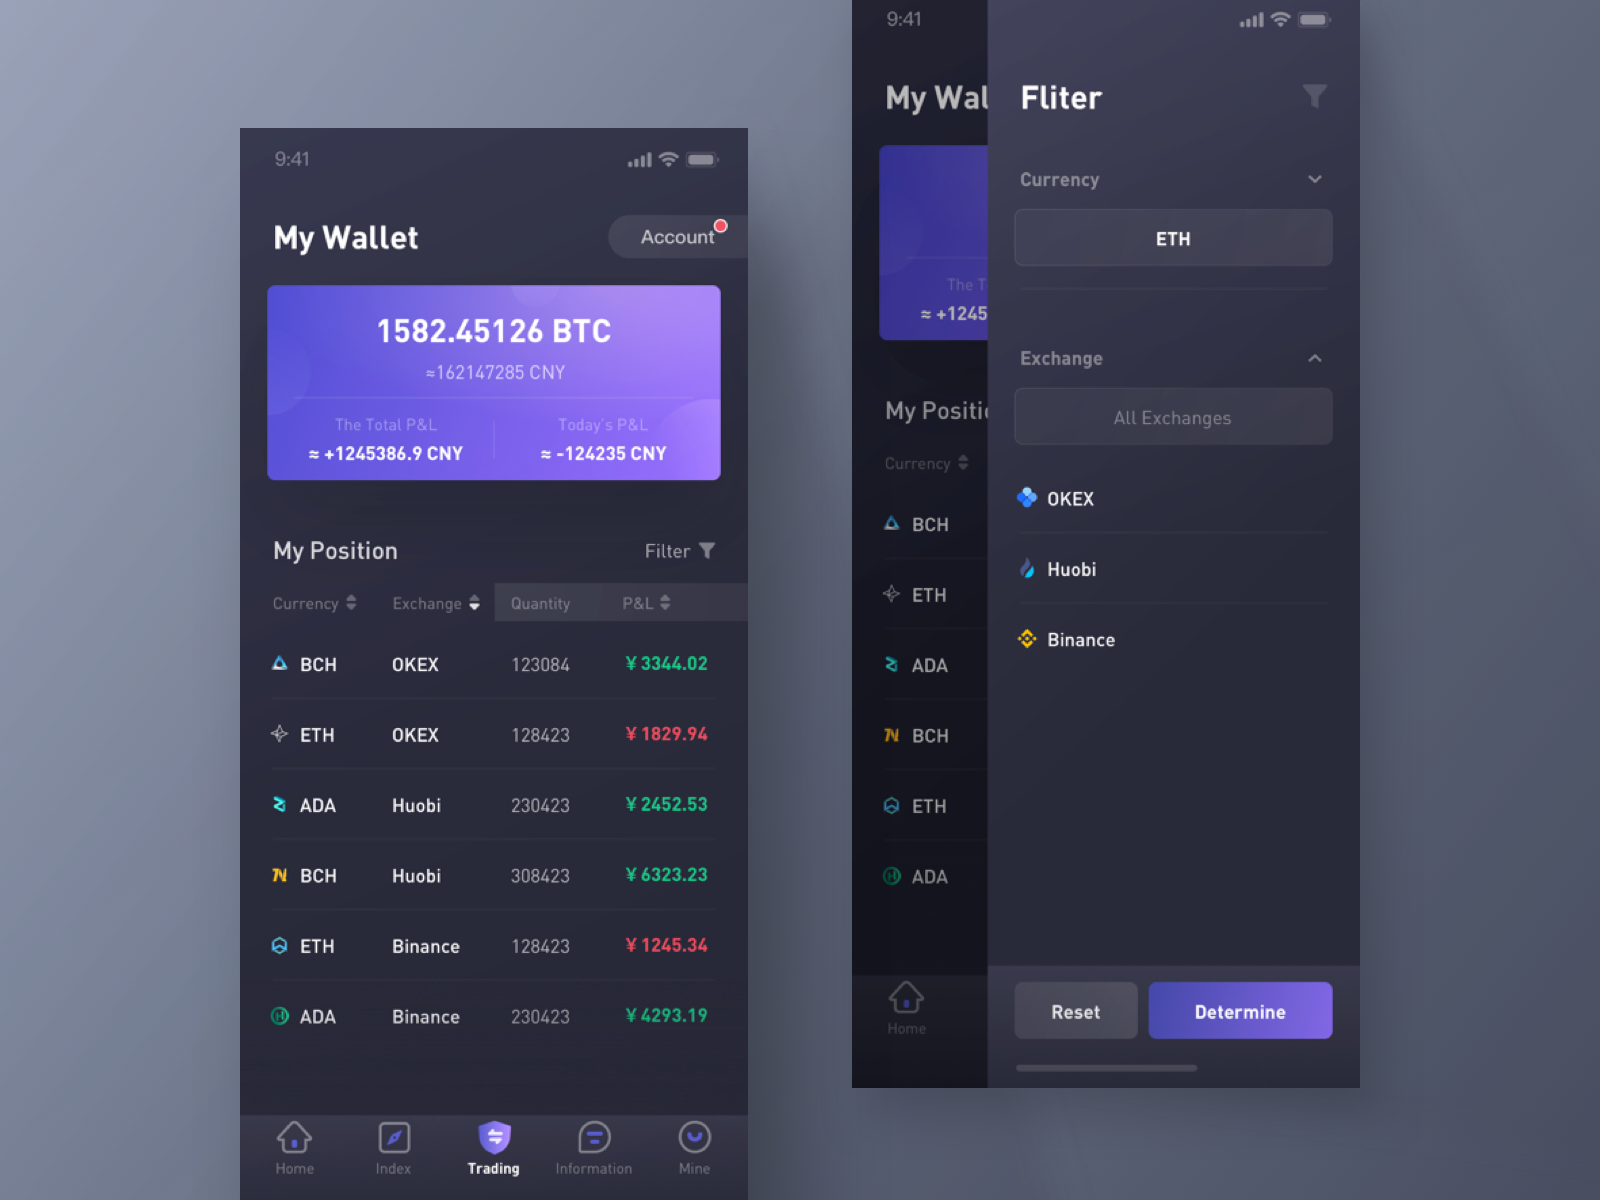 Virtual Currency App - Trading Wallet | UI | Foreign